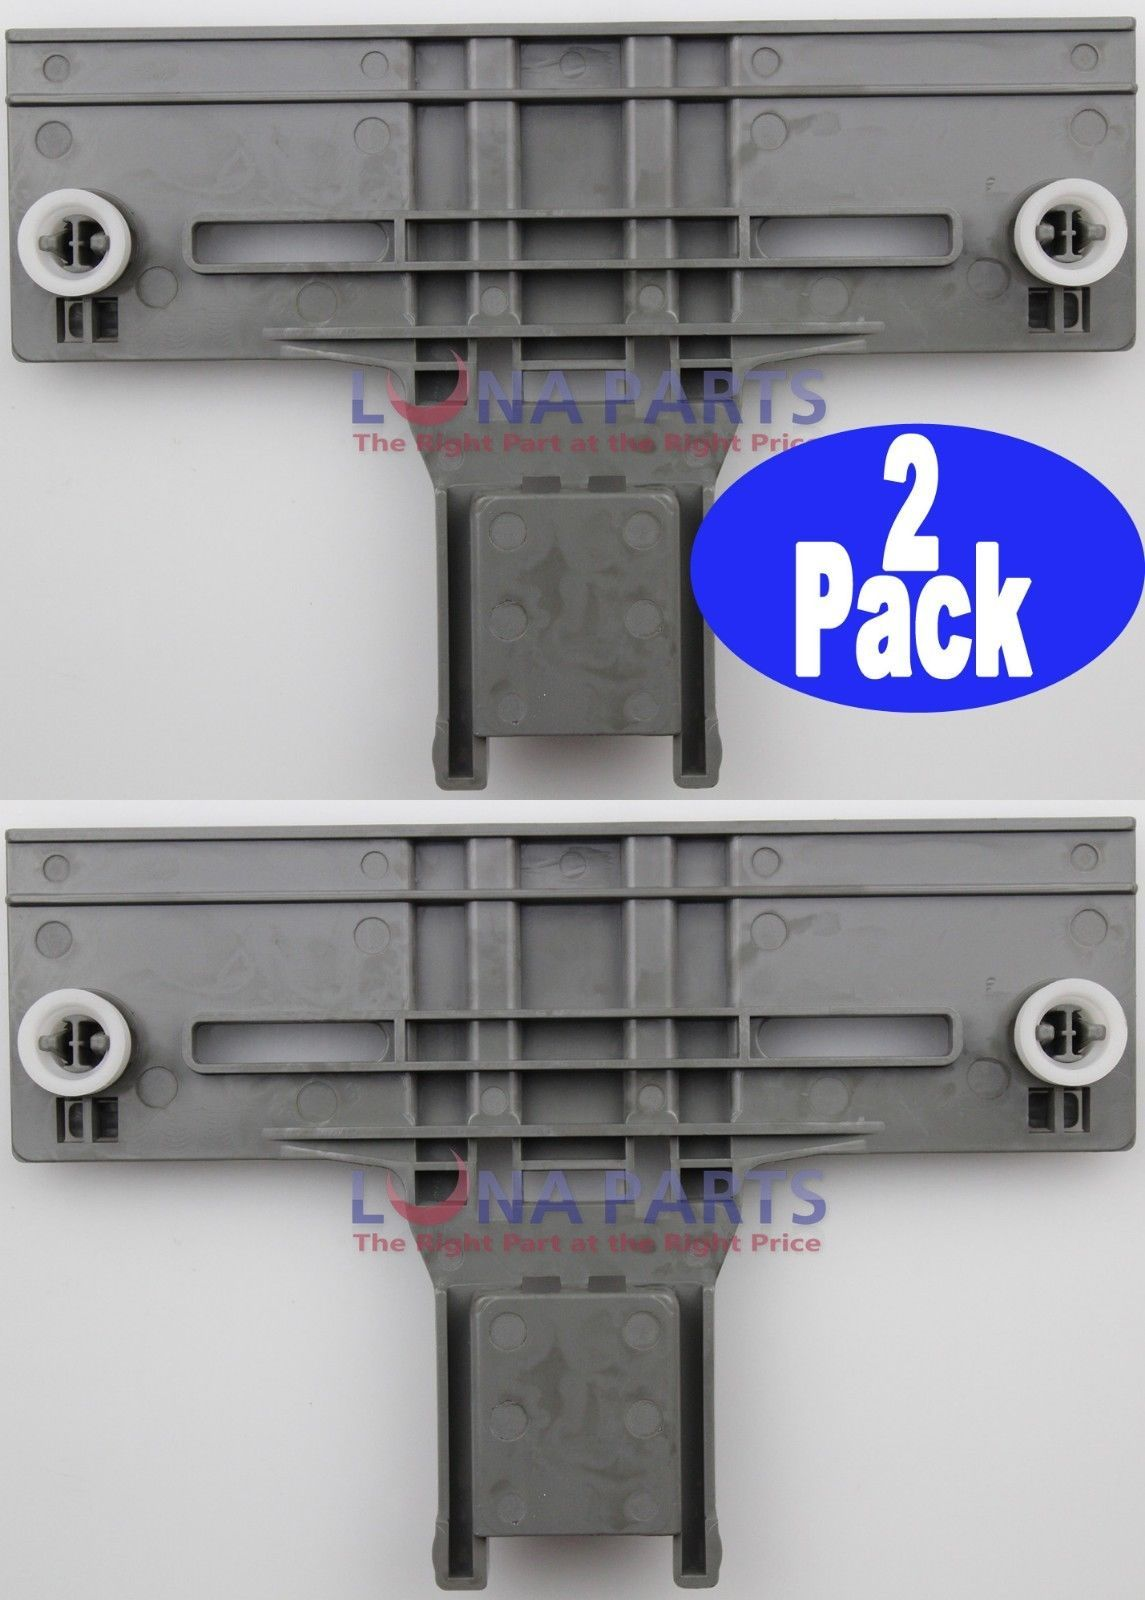 Dishwasher parts and accessories 116026 2 pack w10350376